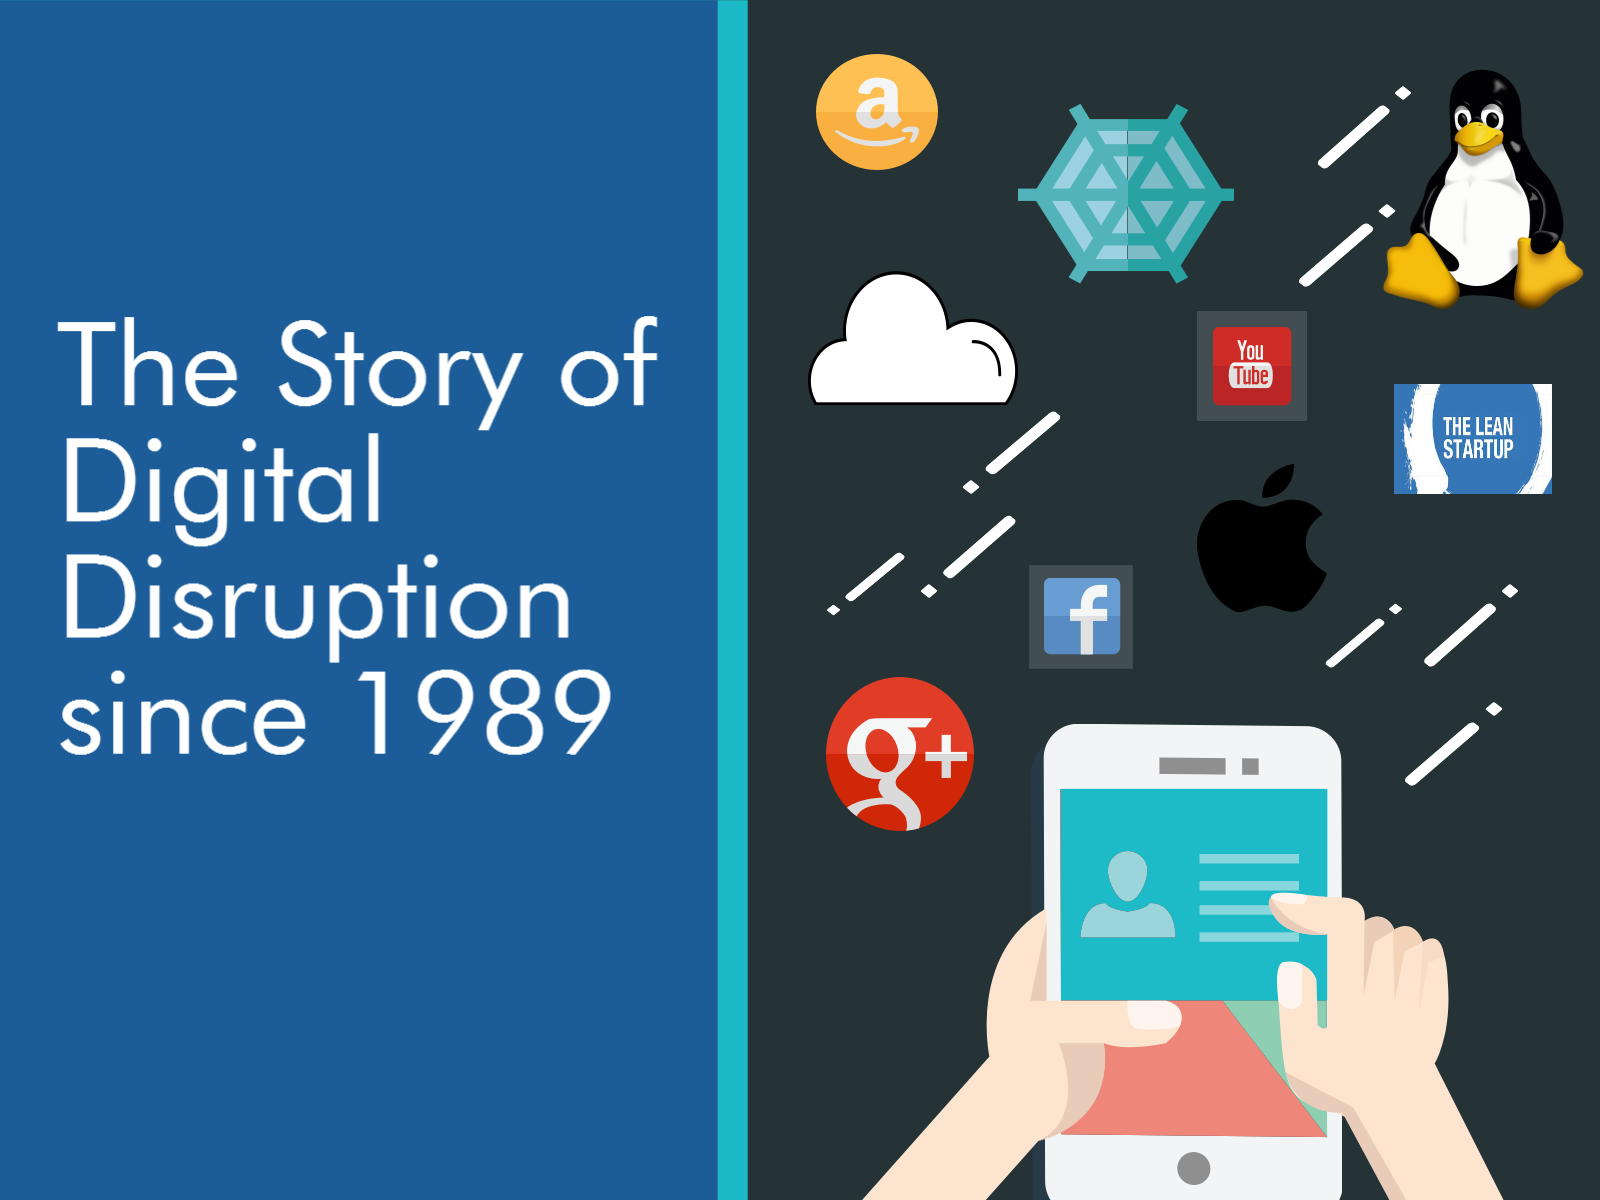 The Story of Digital Disruption